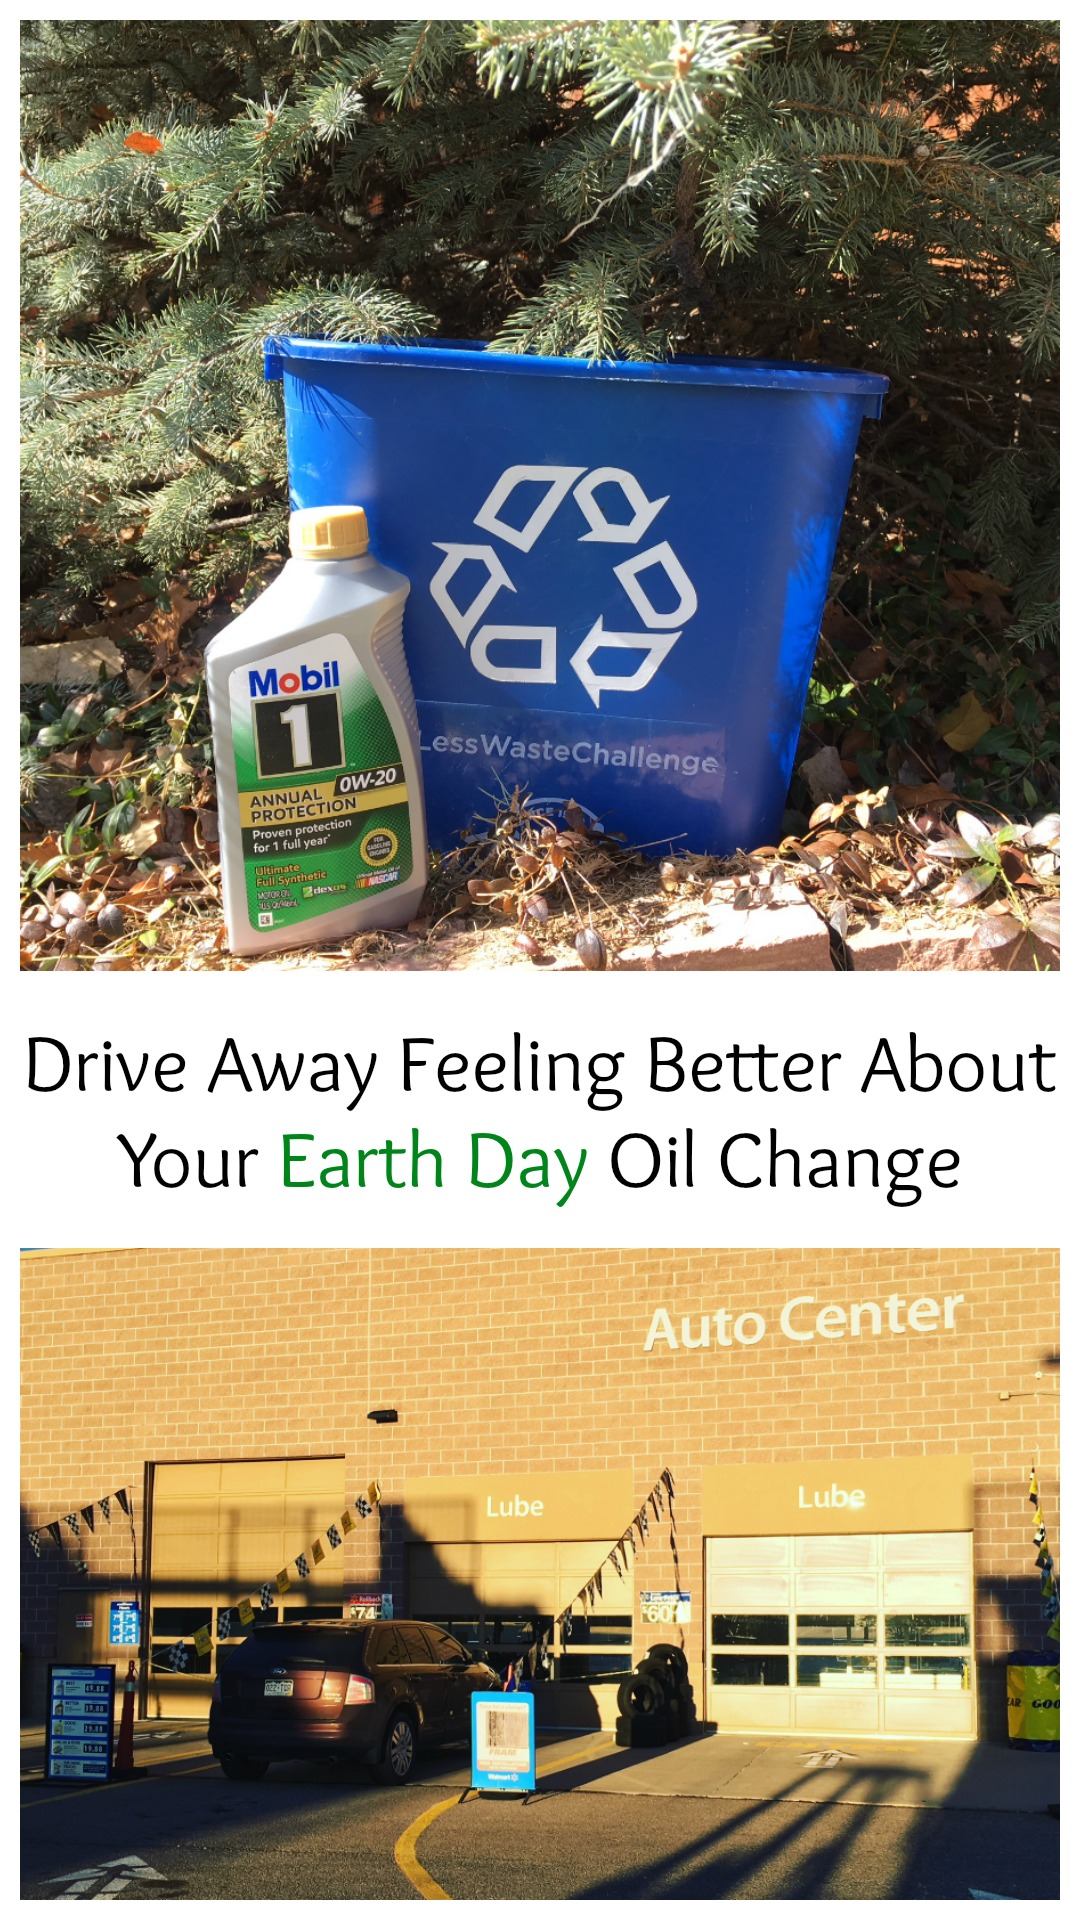 Drive Away Feeling Better About Your Earth Day Oil Change